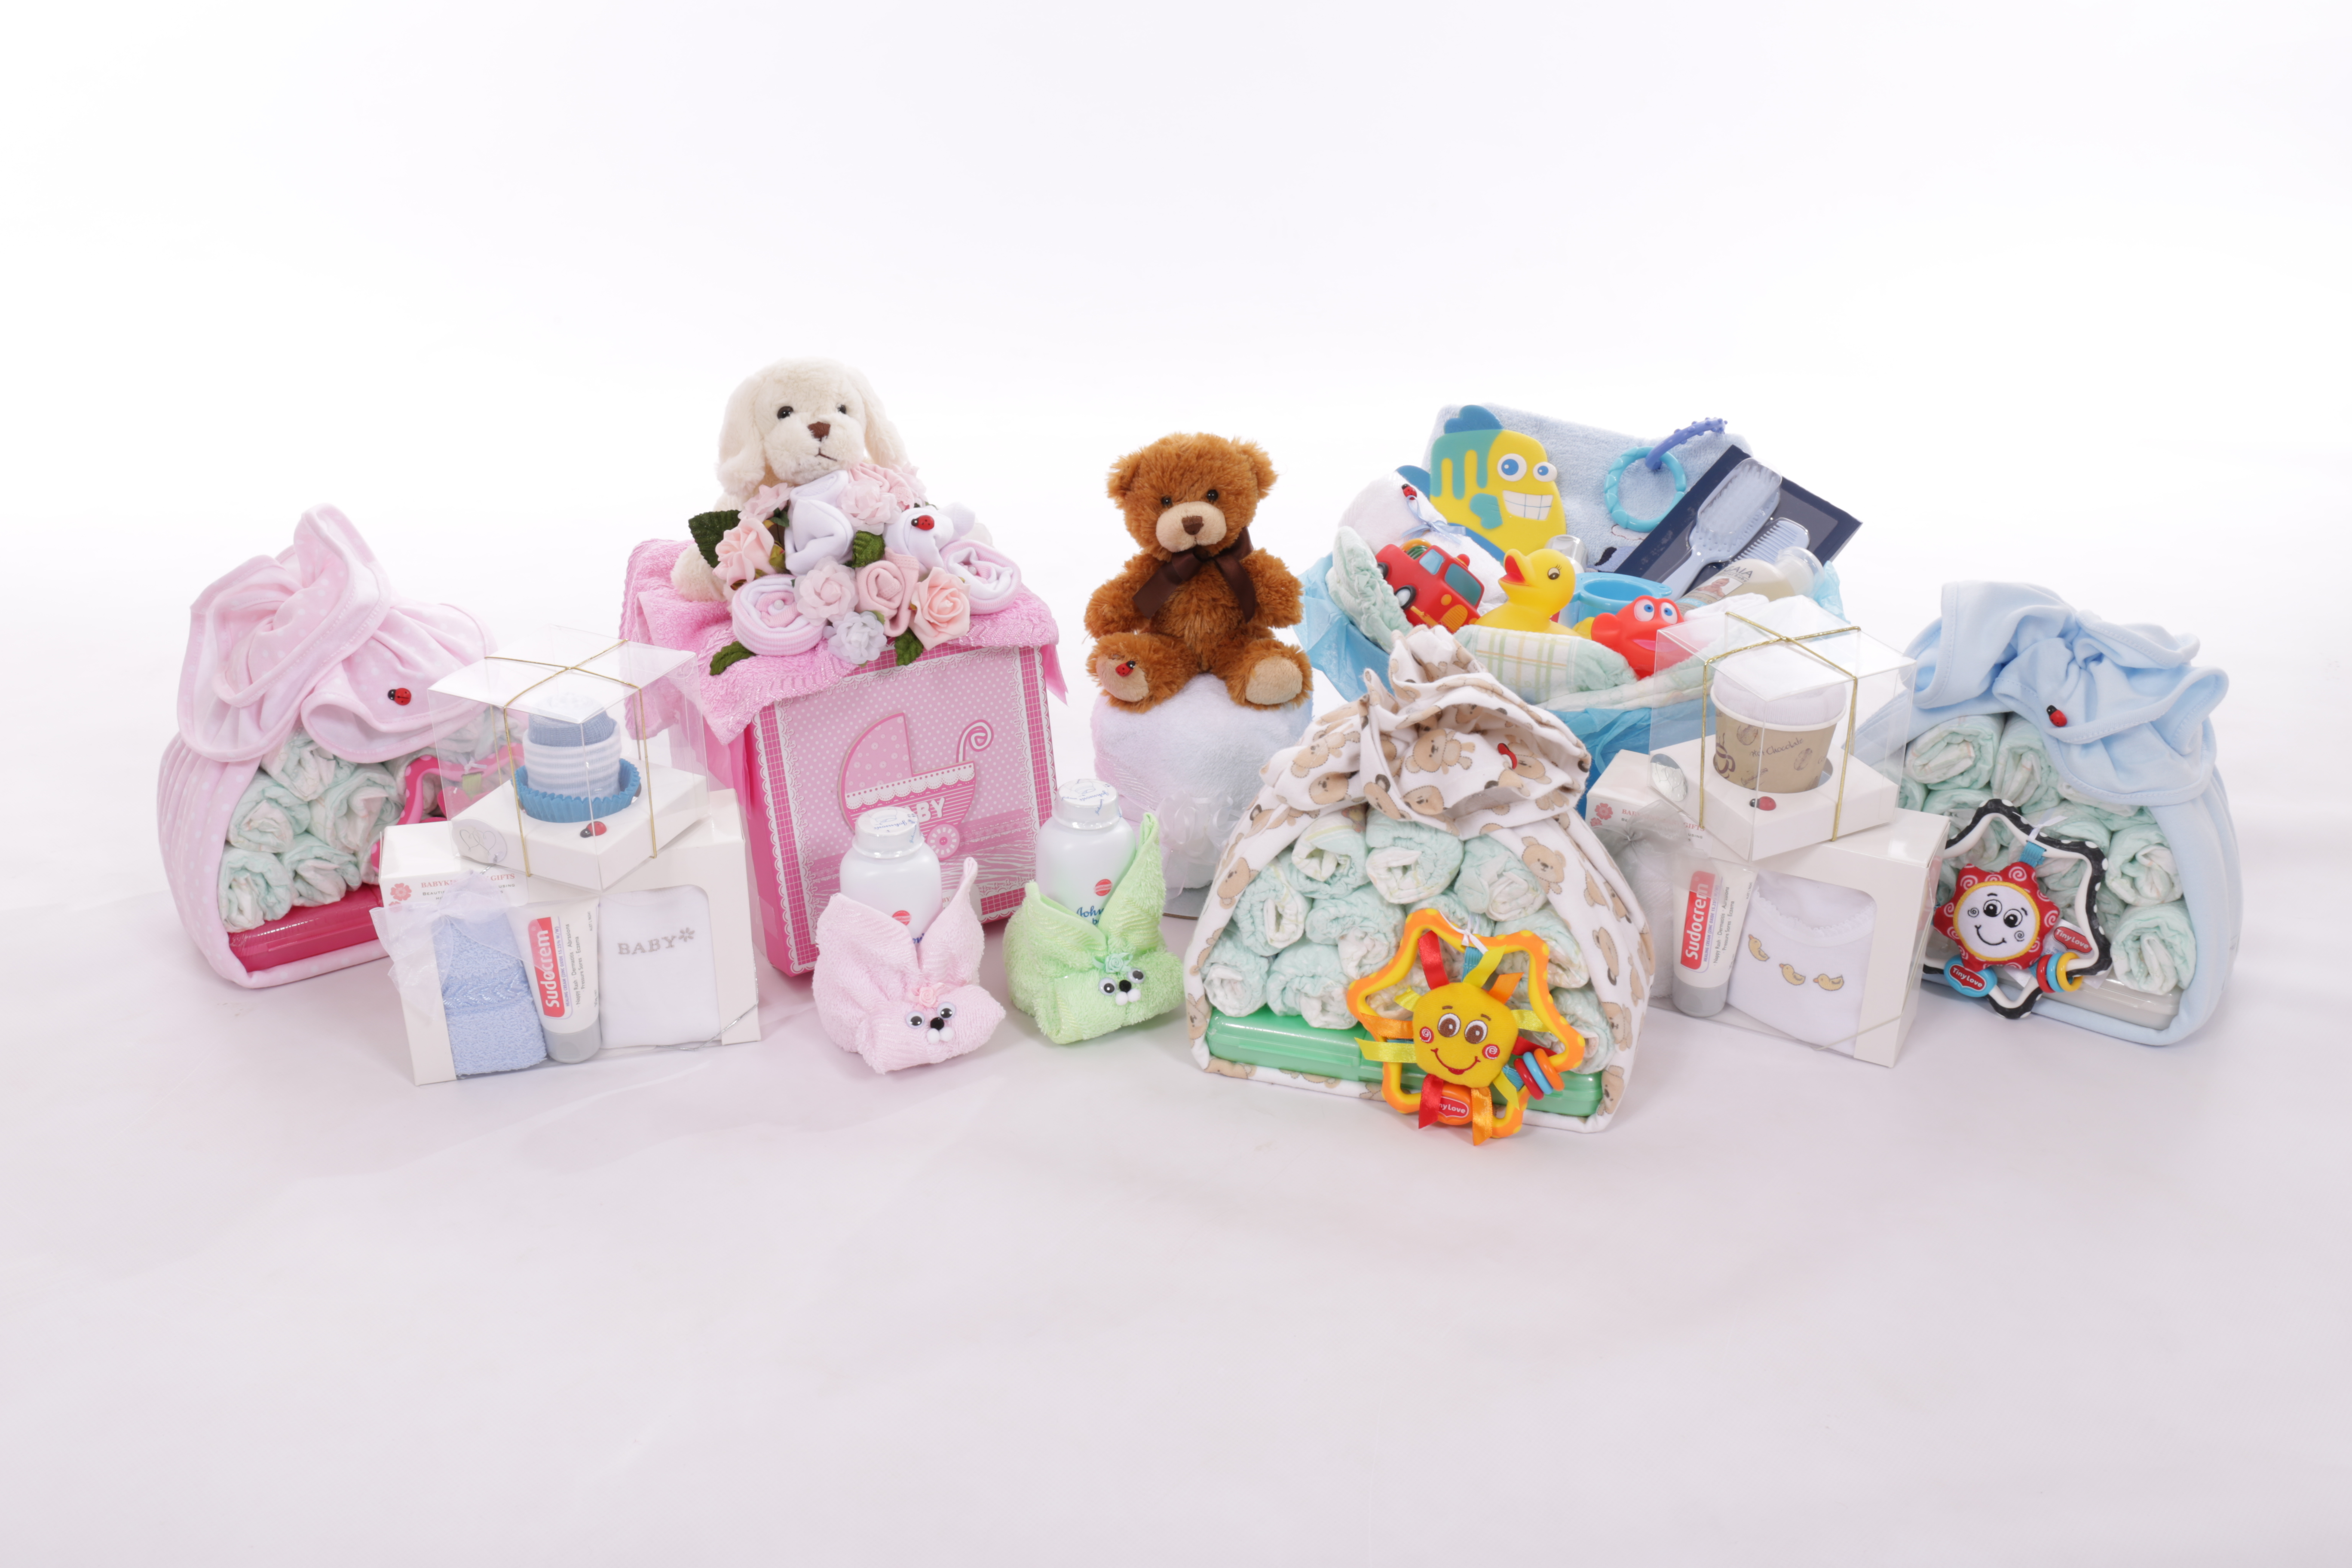 Baby Boy Gifts Melbourne : Nappy cakes melbourne delivered baby hampers